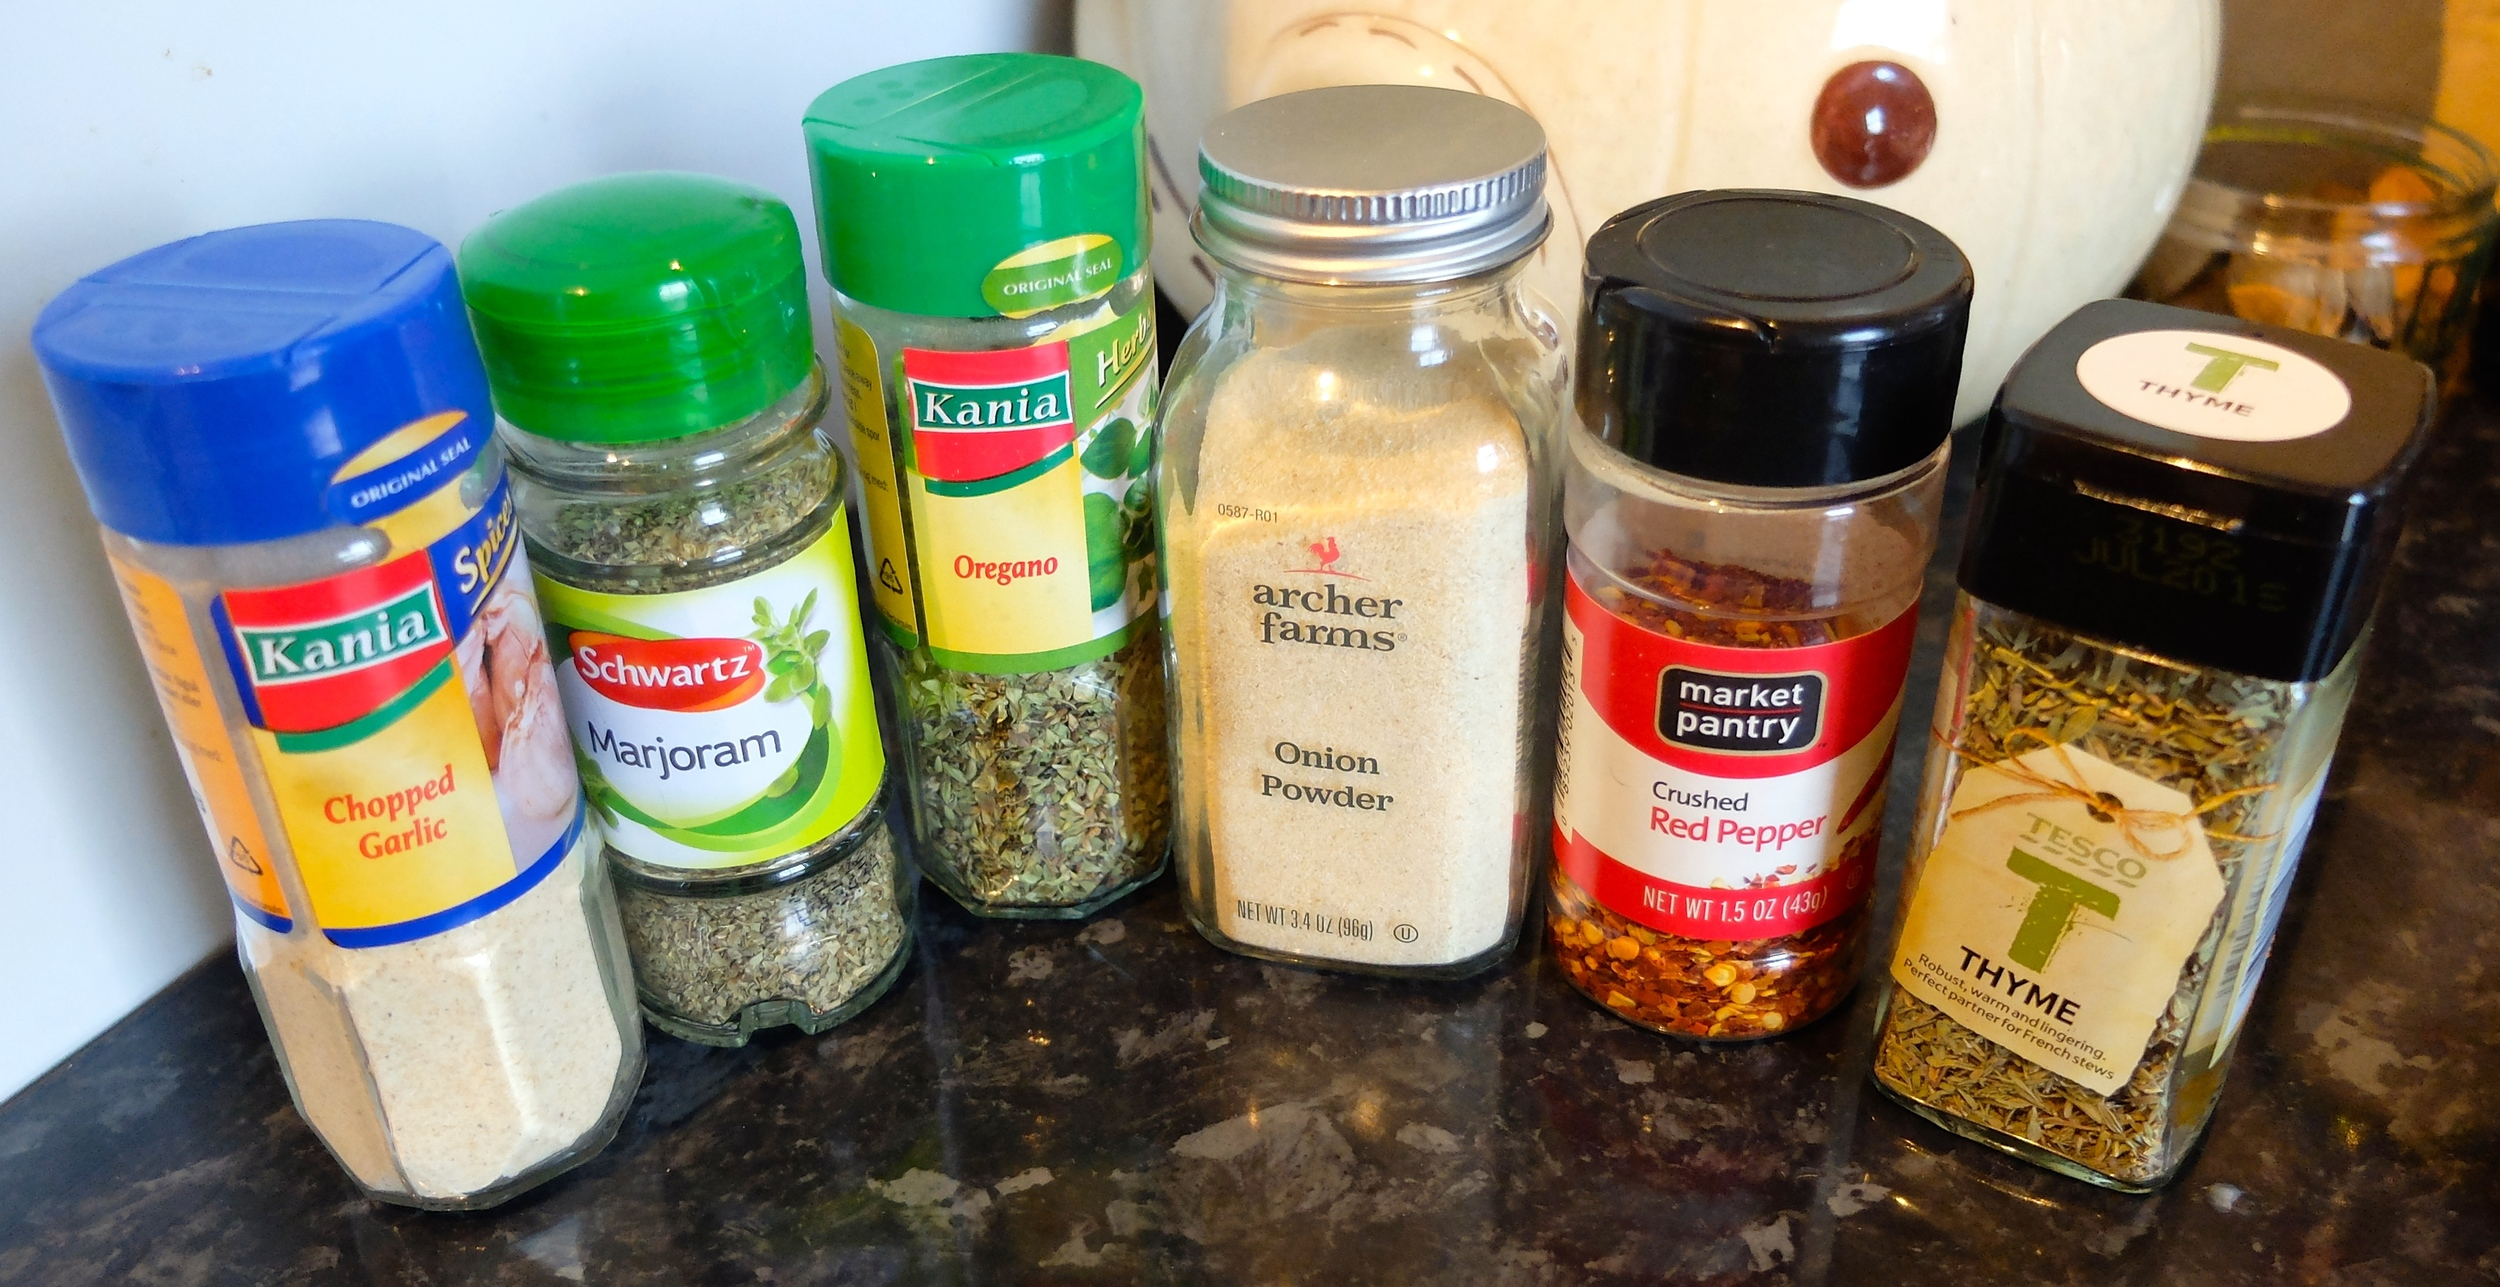 If you noticed that the onion powder and the red pepper are from Target, you're right. I stock up every time we're back in the US because I can't find them here.